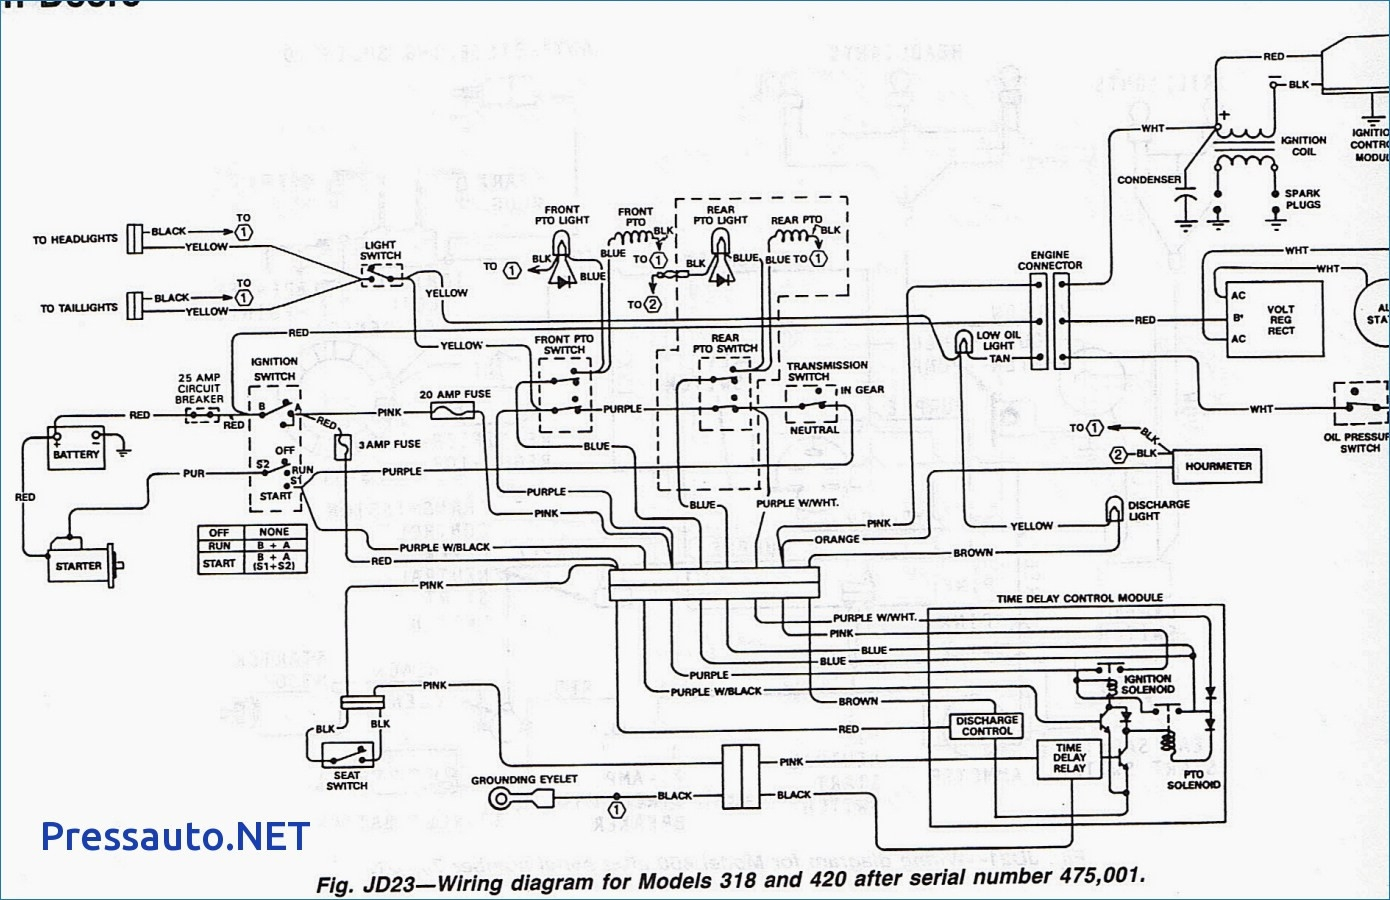 hight resolution of john deere 3020 diesel wiring diagram wiring diagramjohn deere 3020 diesel wiring diagram